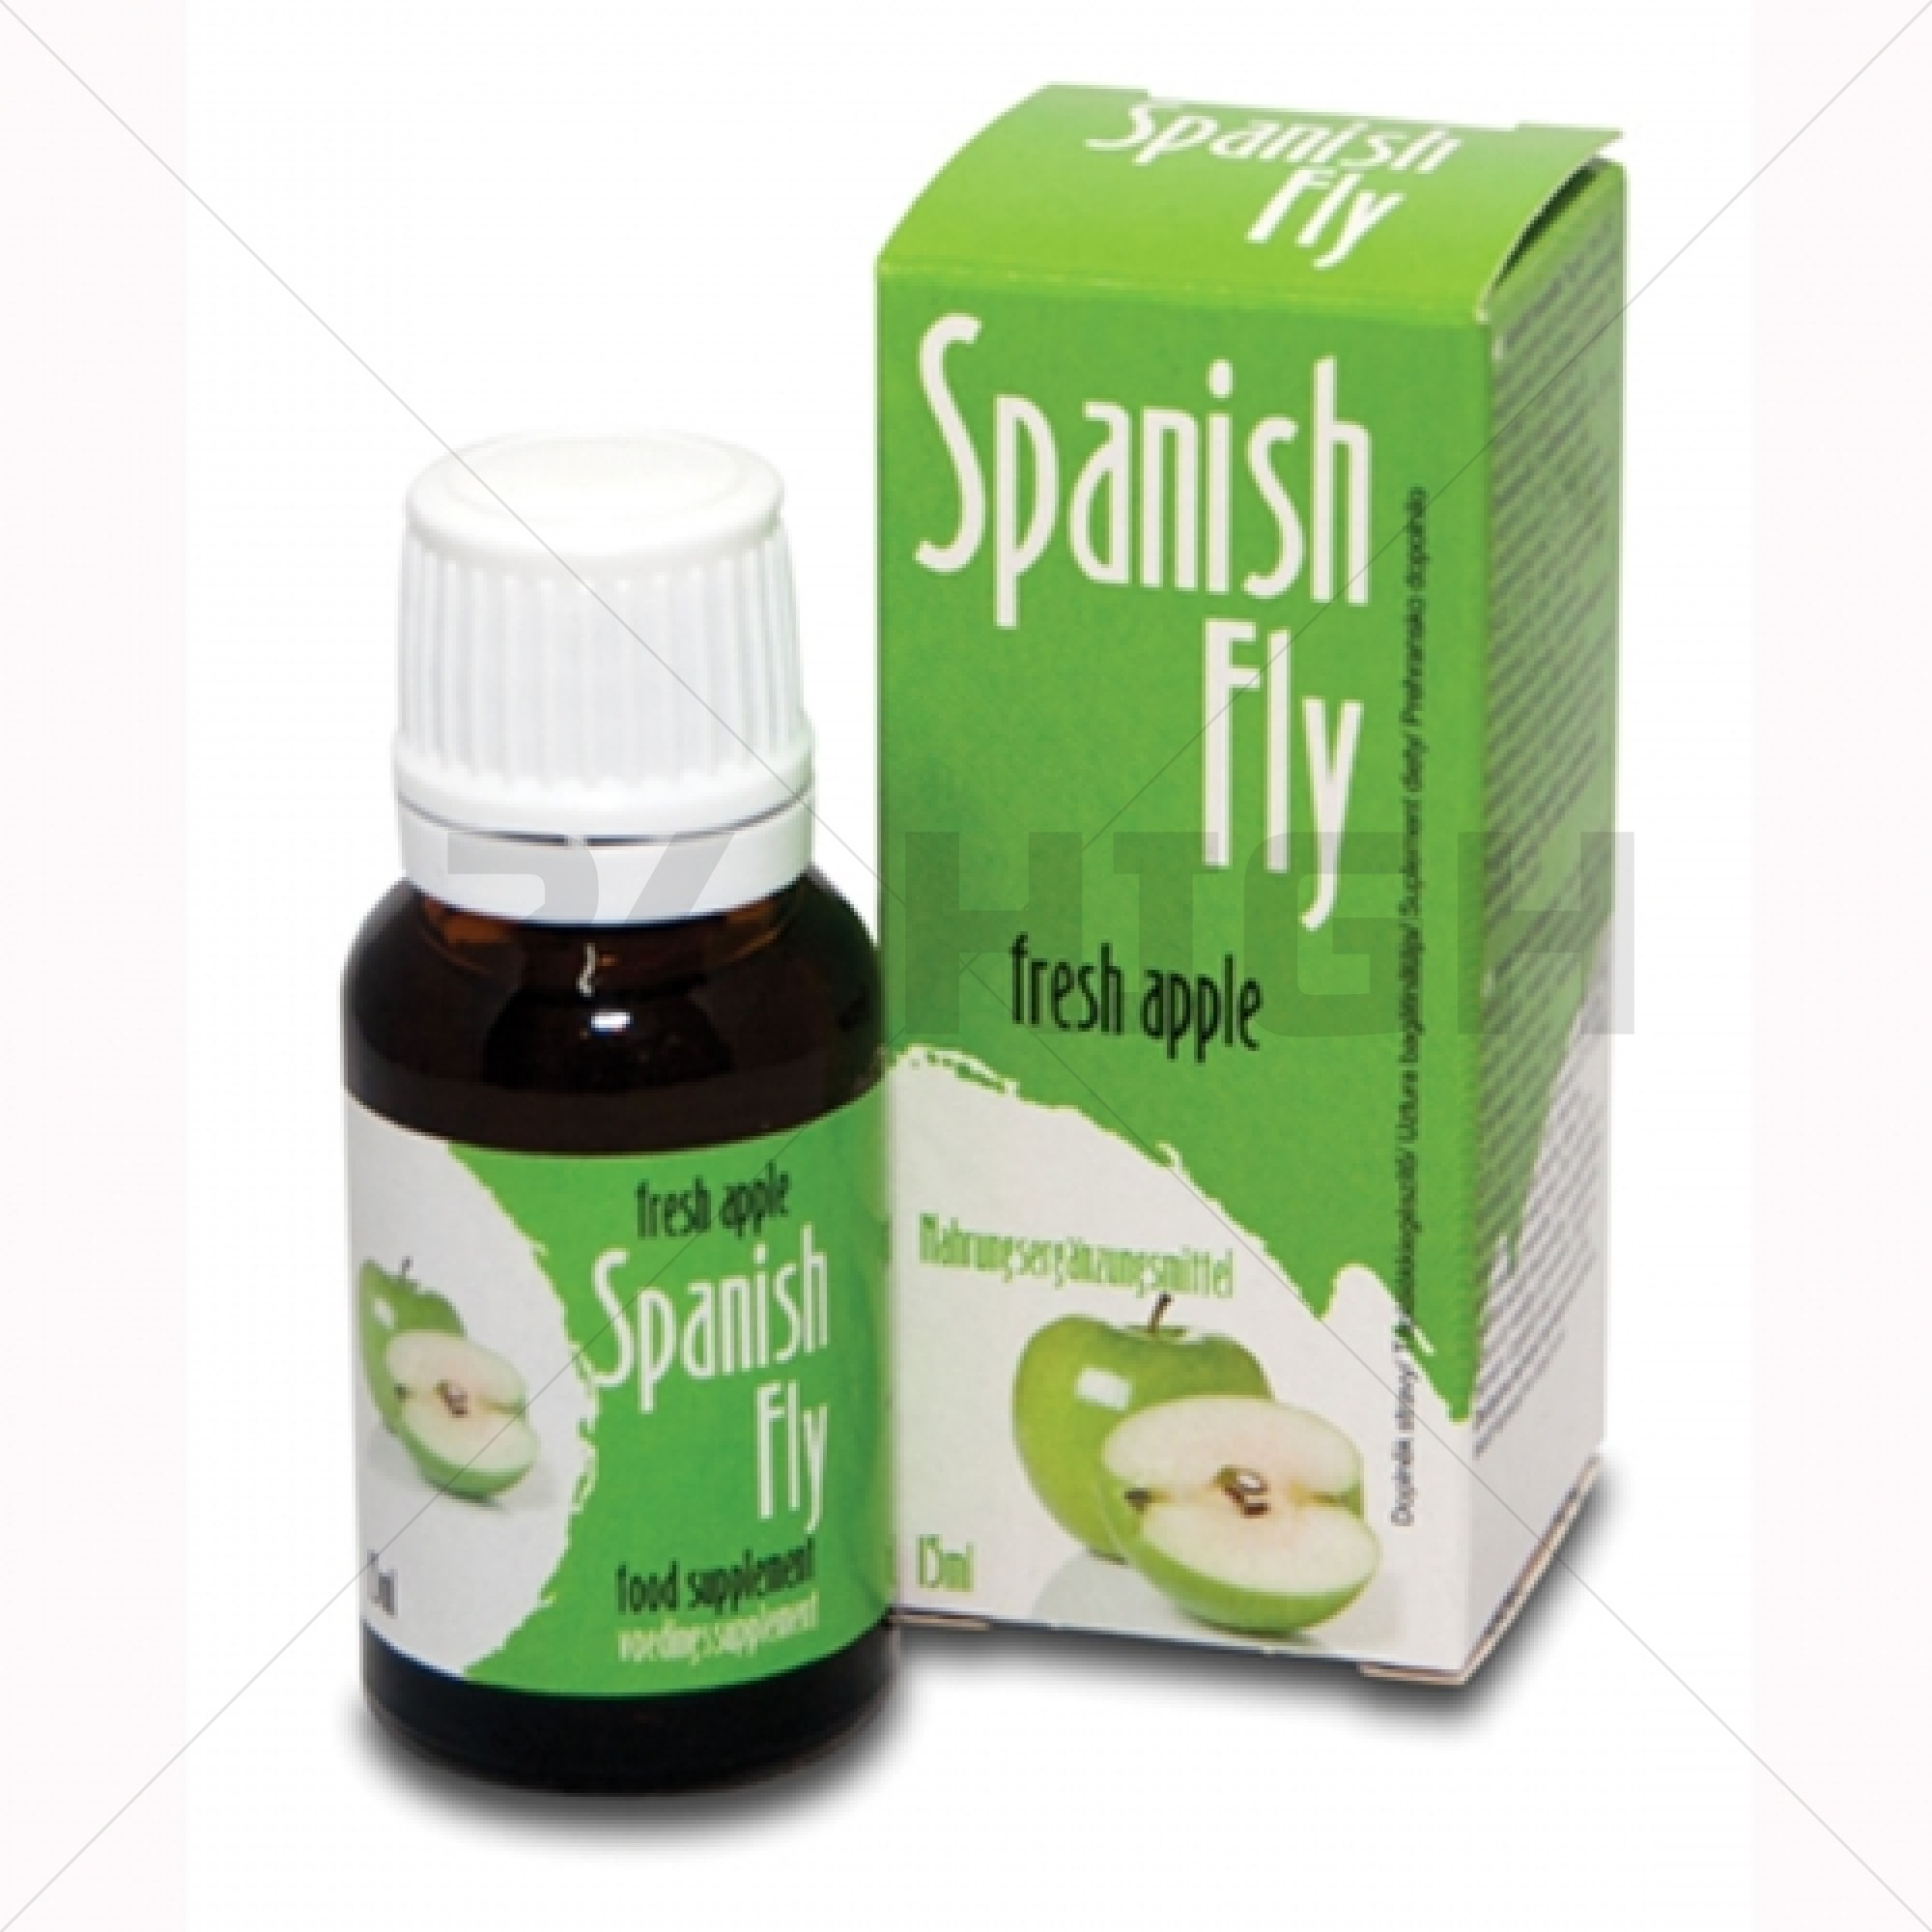 Spanish Fly Fresh Apple - 15 ml